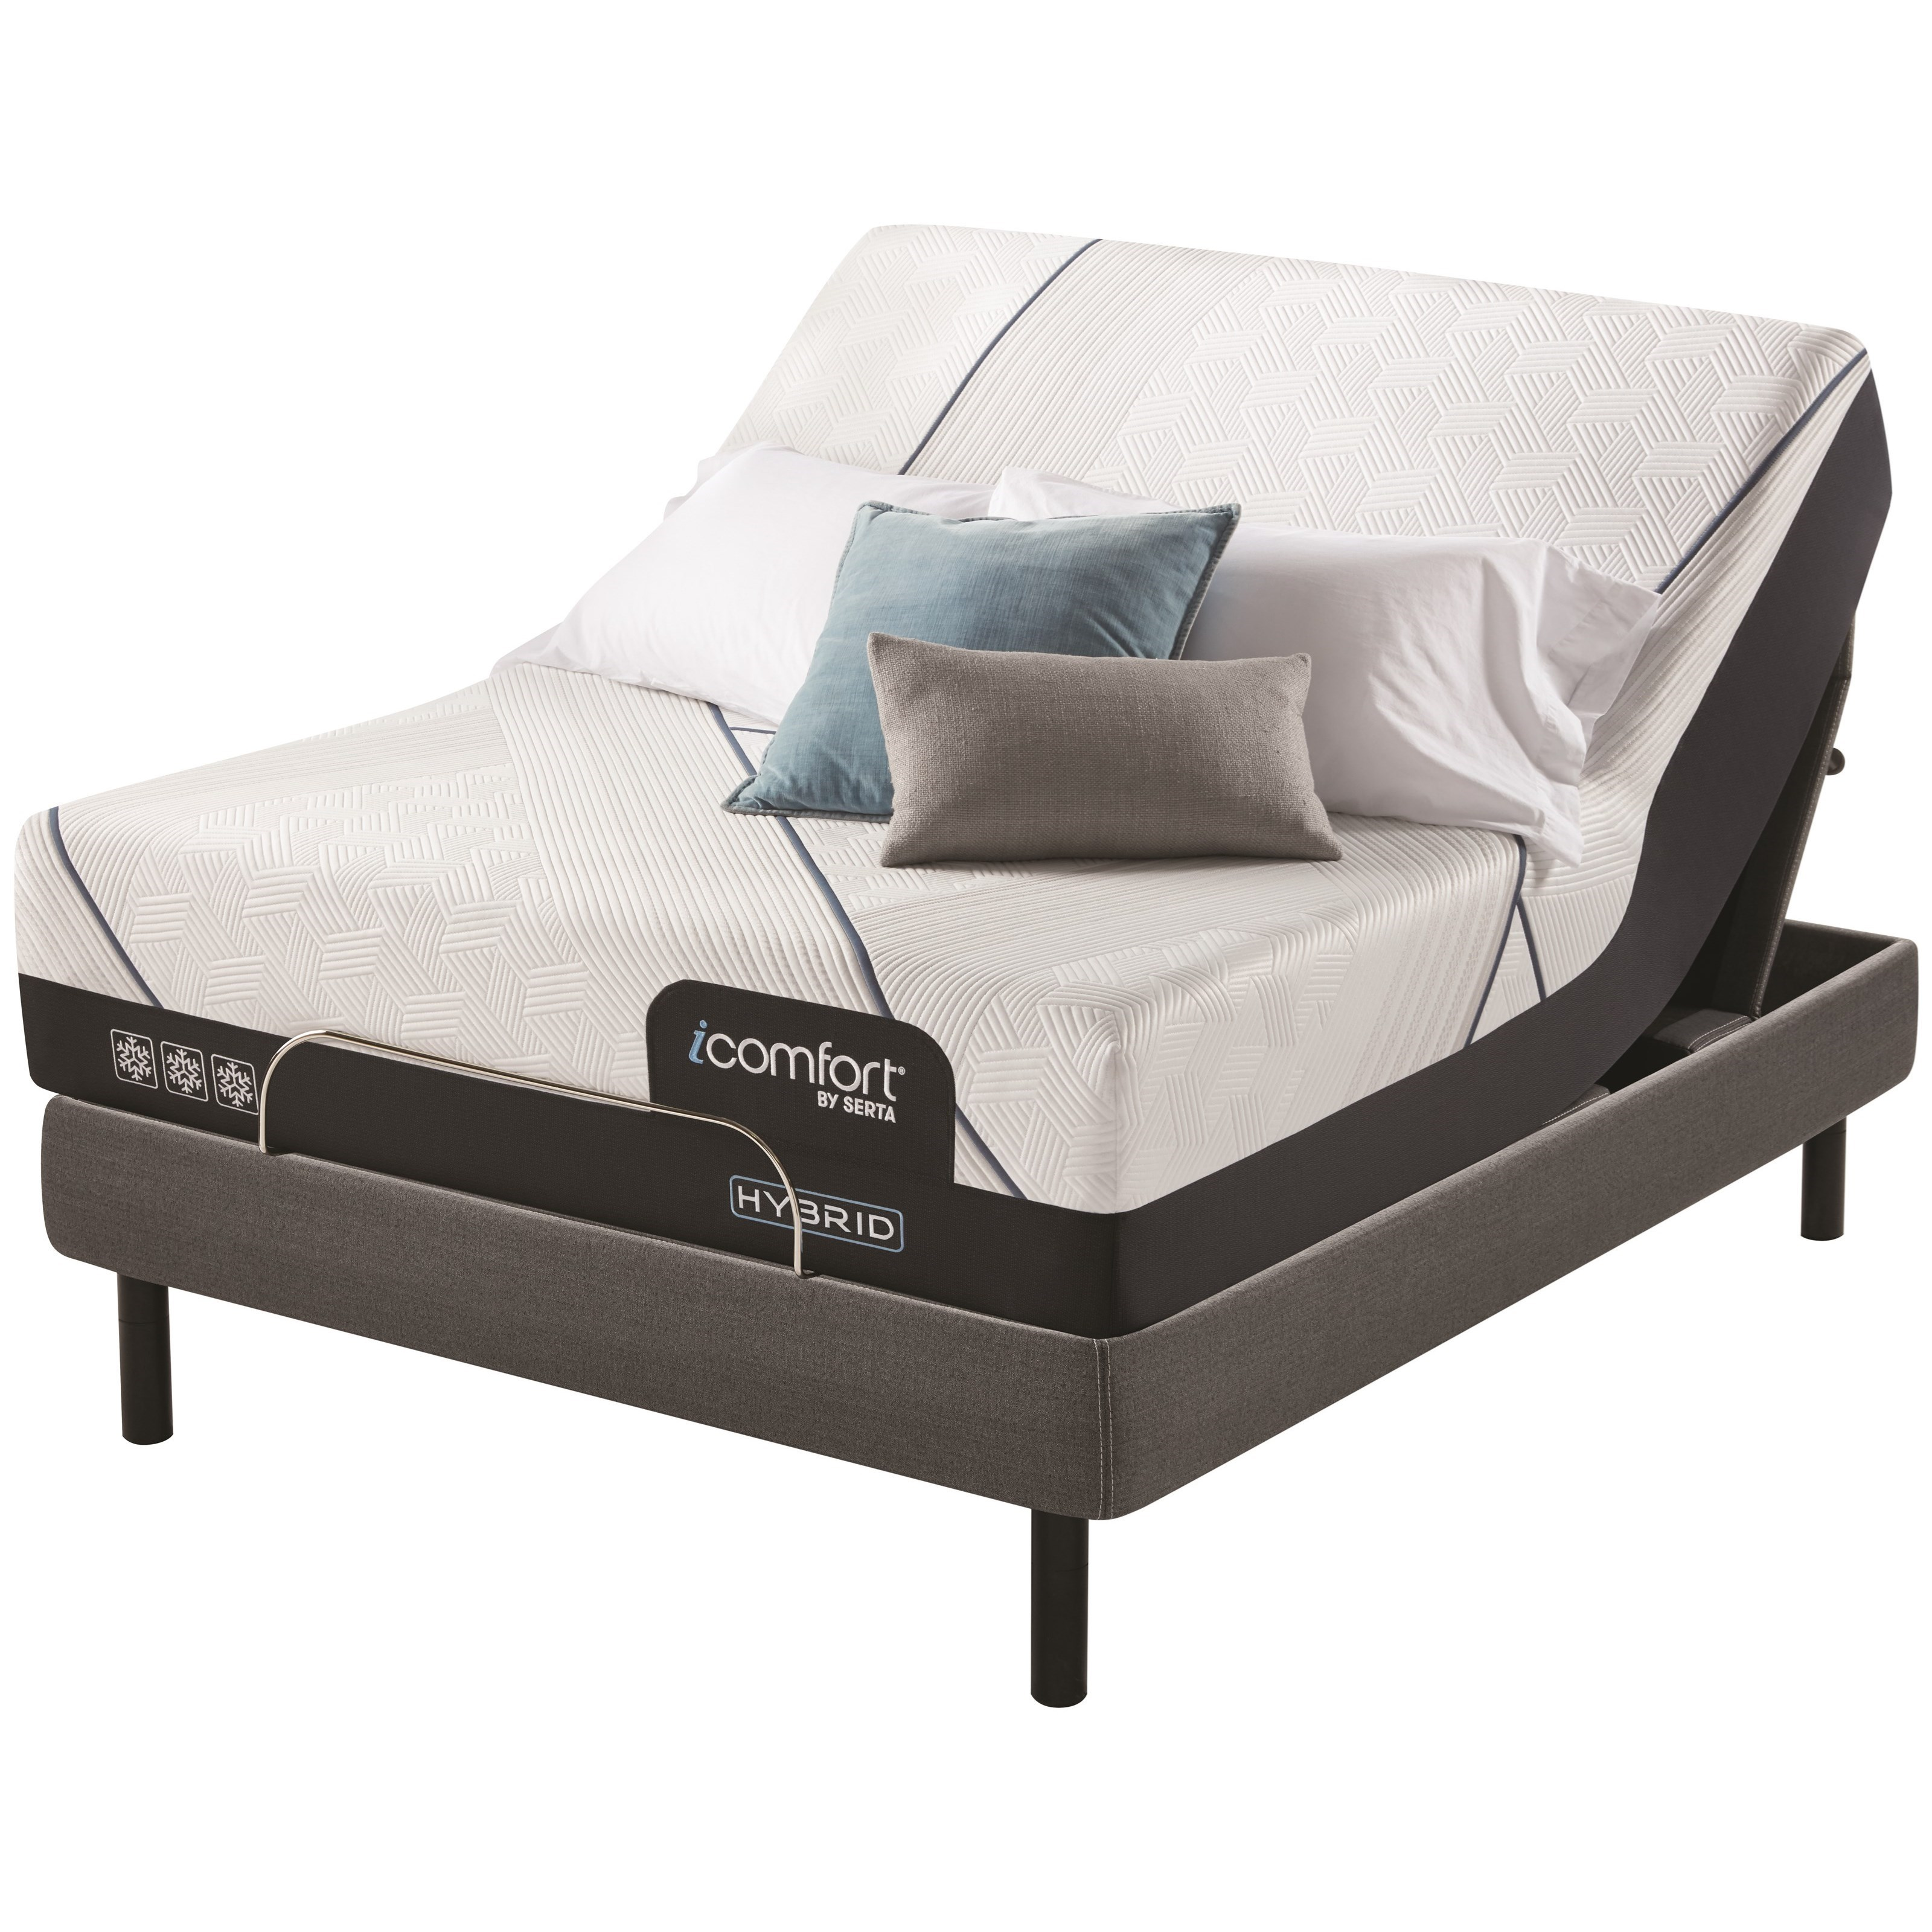 "King 14"" Plush Hybrid Mattress and 1 Pc Divided King Motion Perfect IV Adjustable Base"